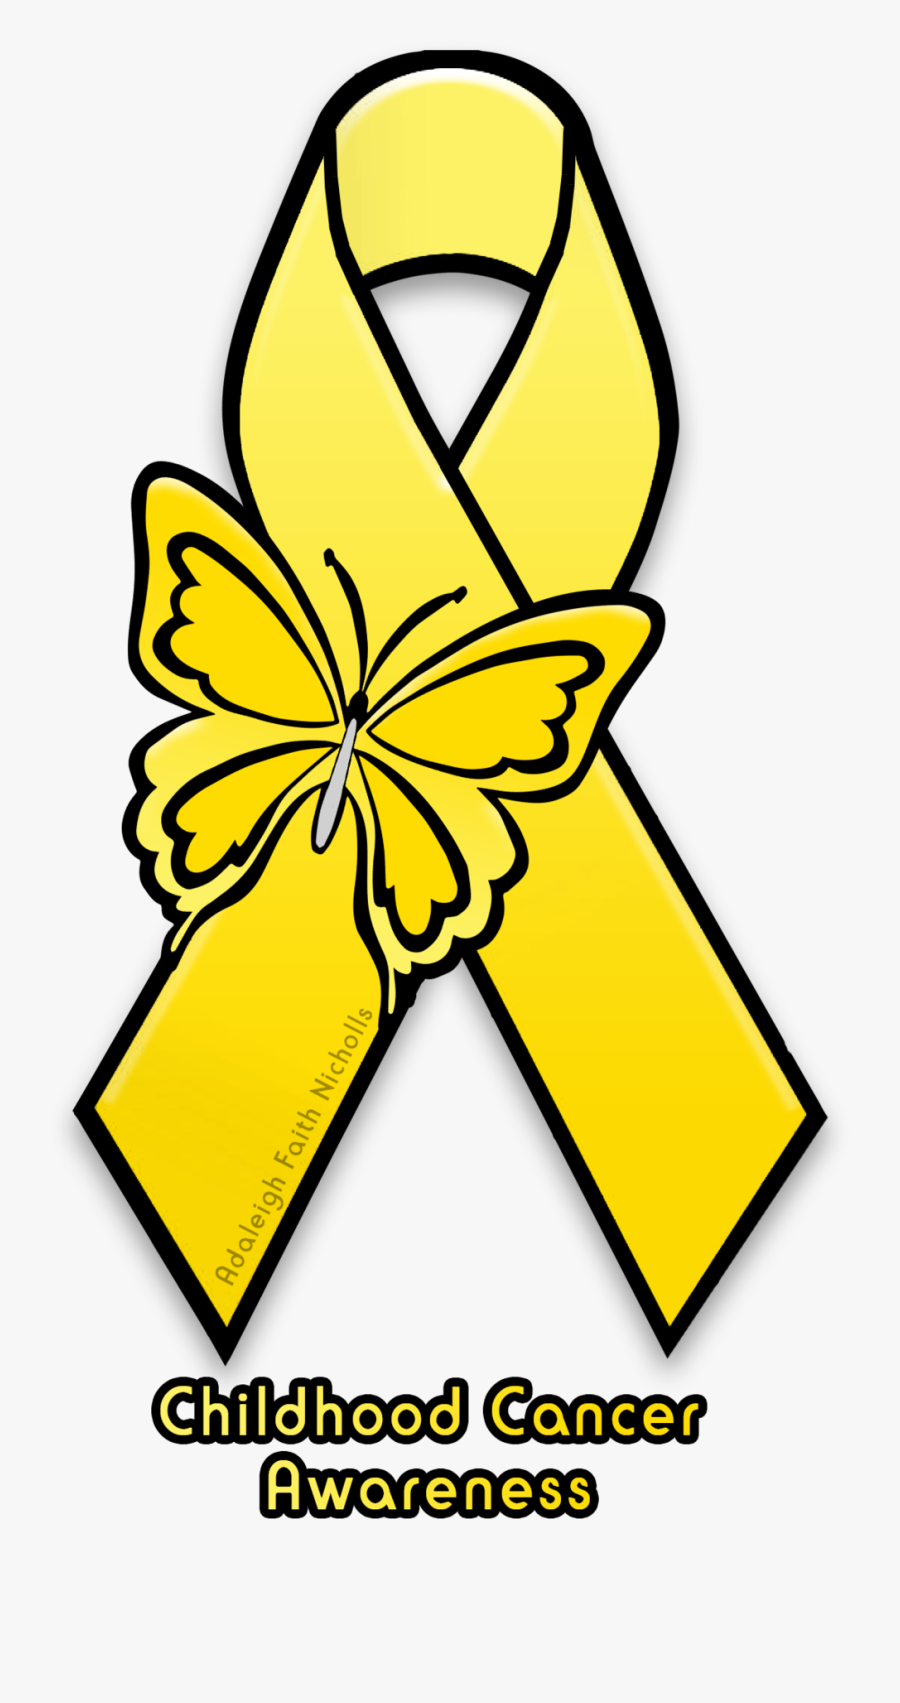 Adaleighfaith 8 2 Childhood Cancer Awareness Ribbon - Mental Health Awareness Symbols, Transparent Clipart